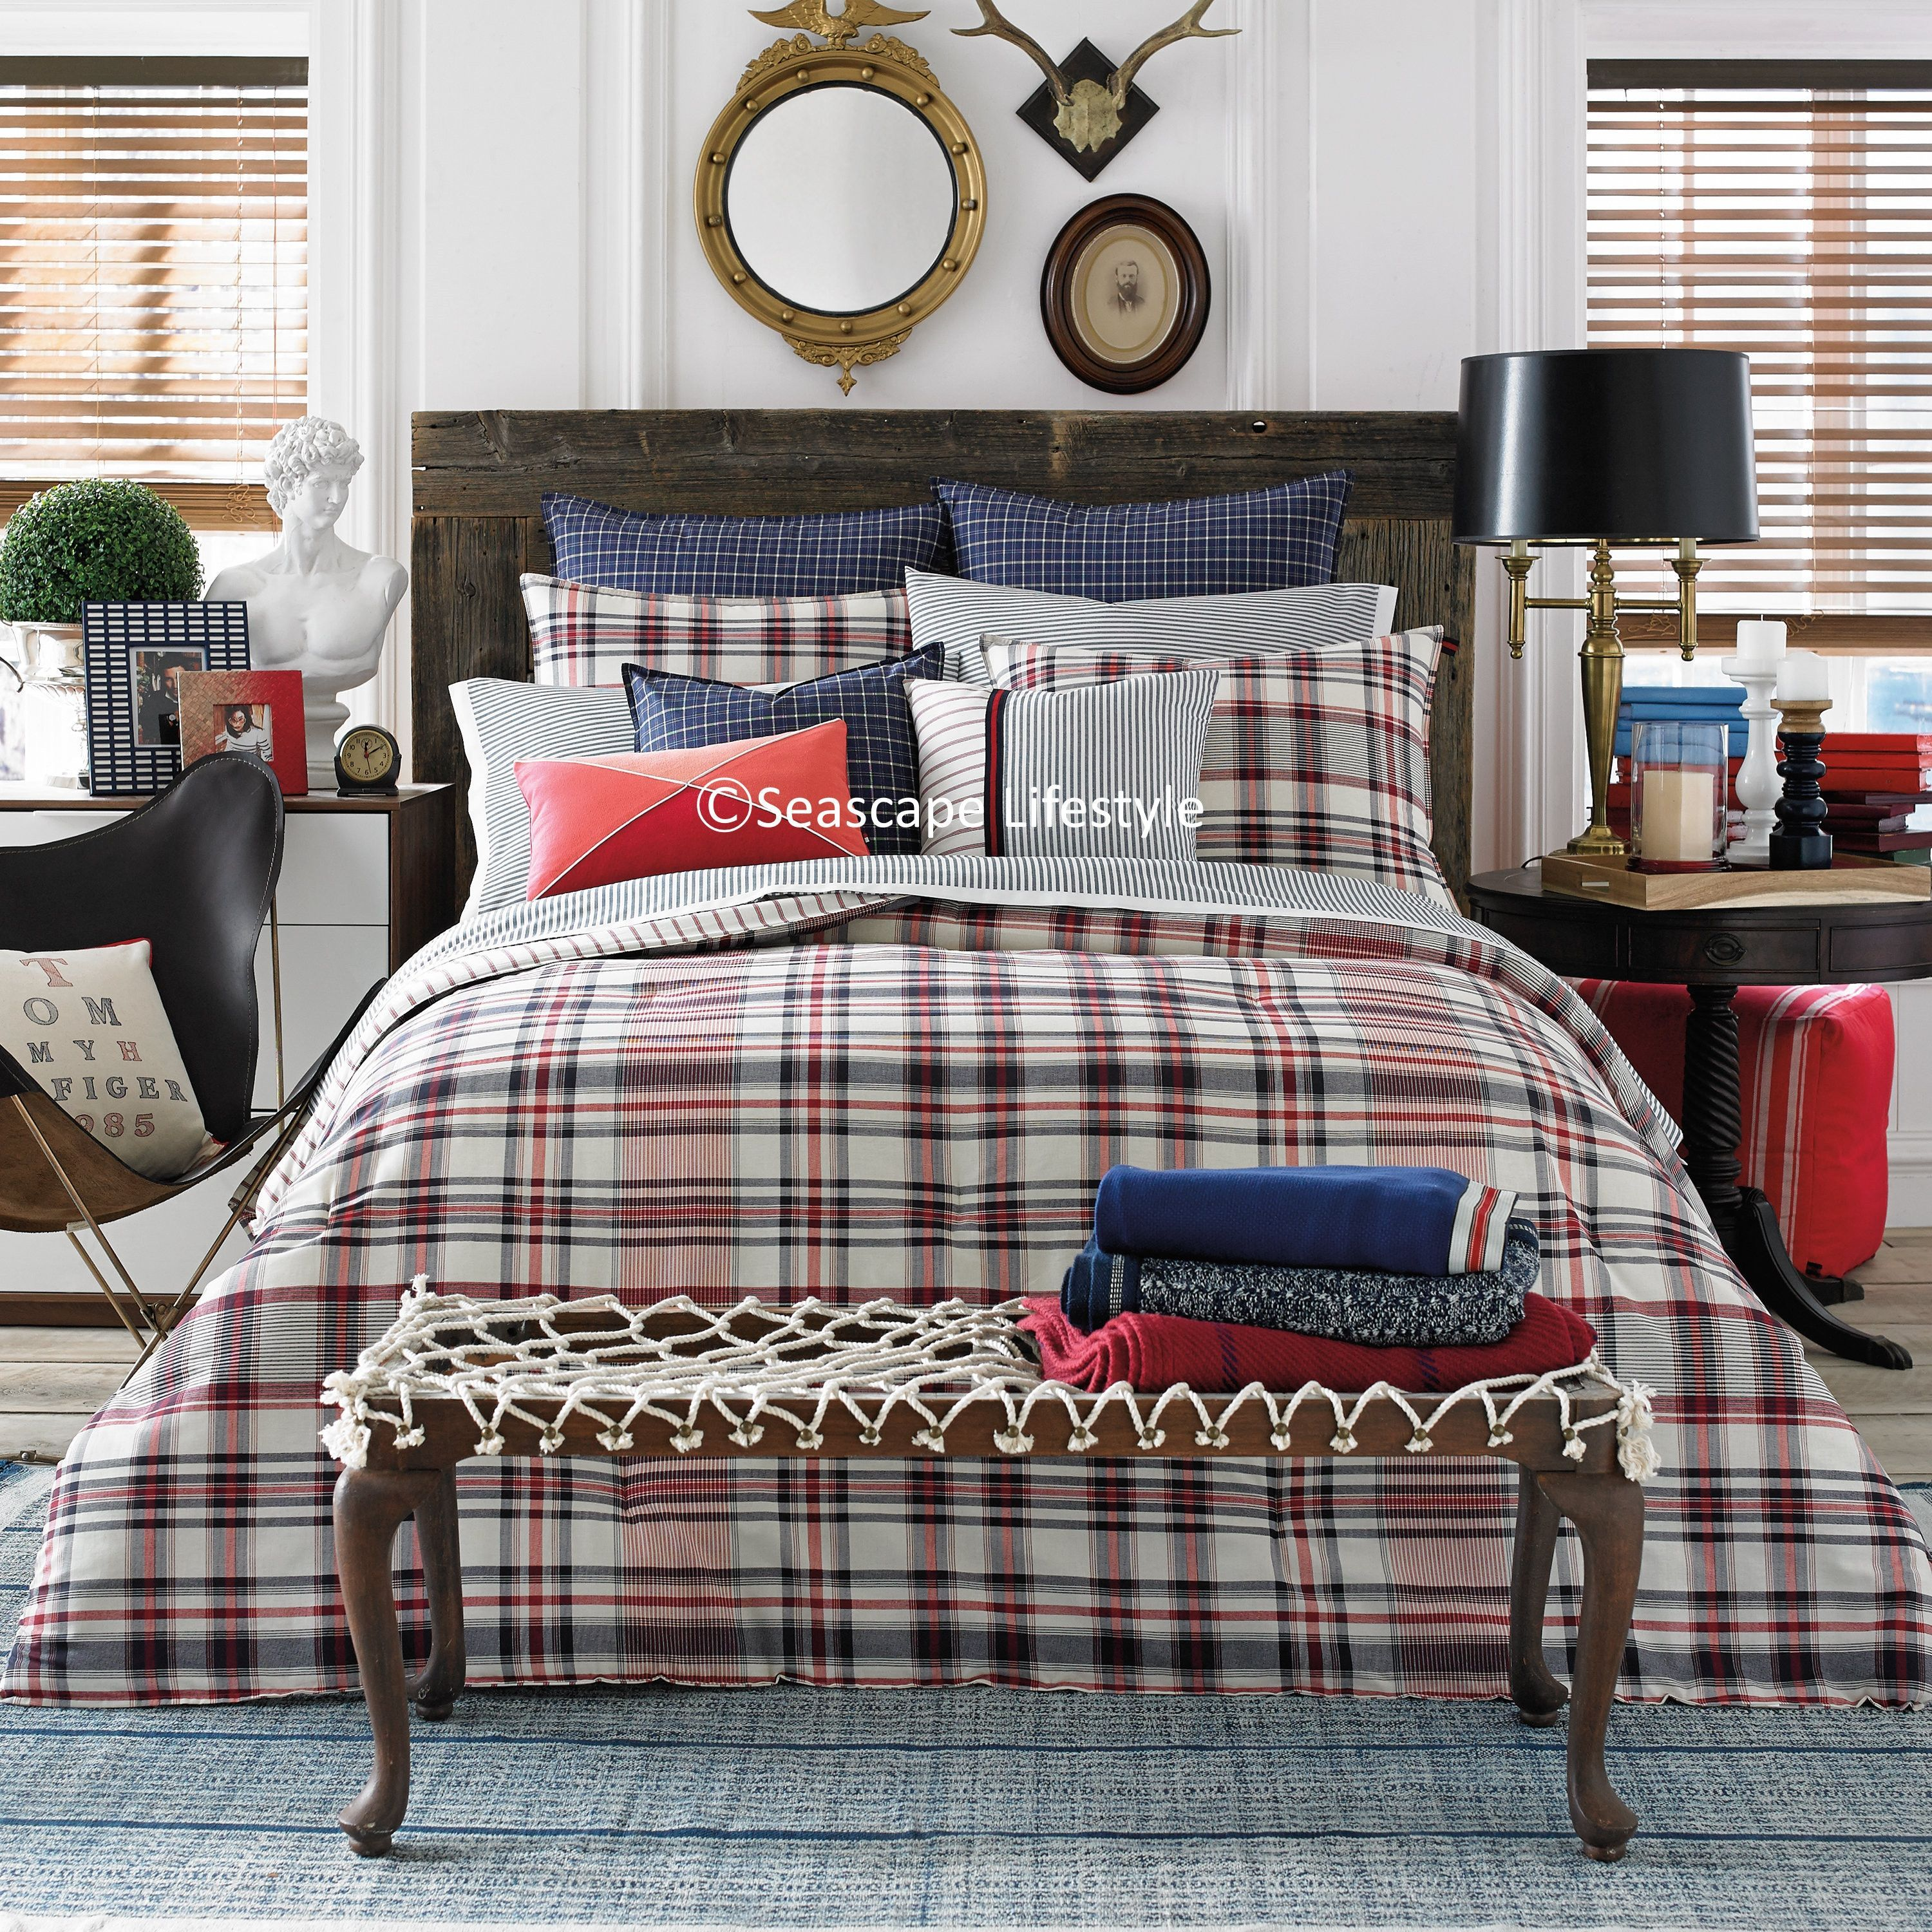 covers bag in duvet white plaid black bed teen ultimate p set boy twin queen king gray full eht masculine a bedding